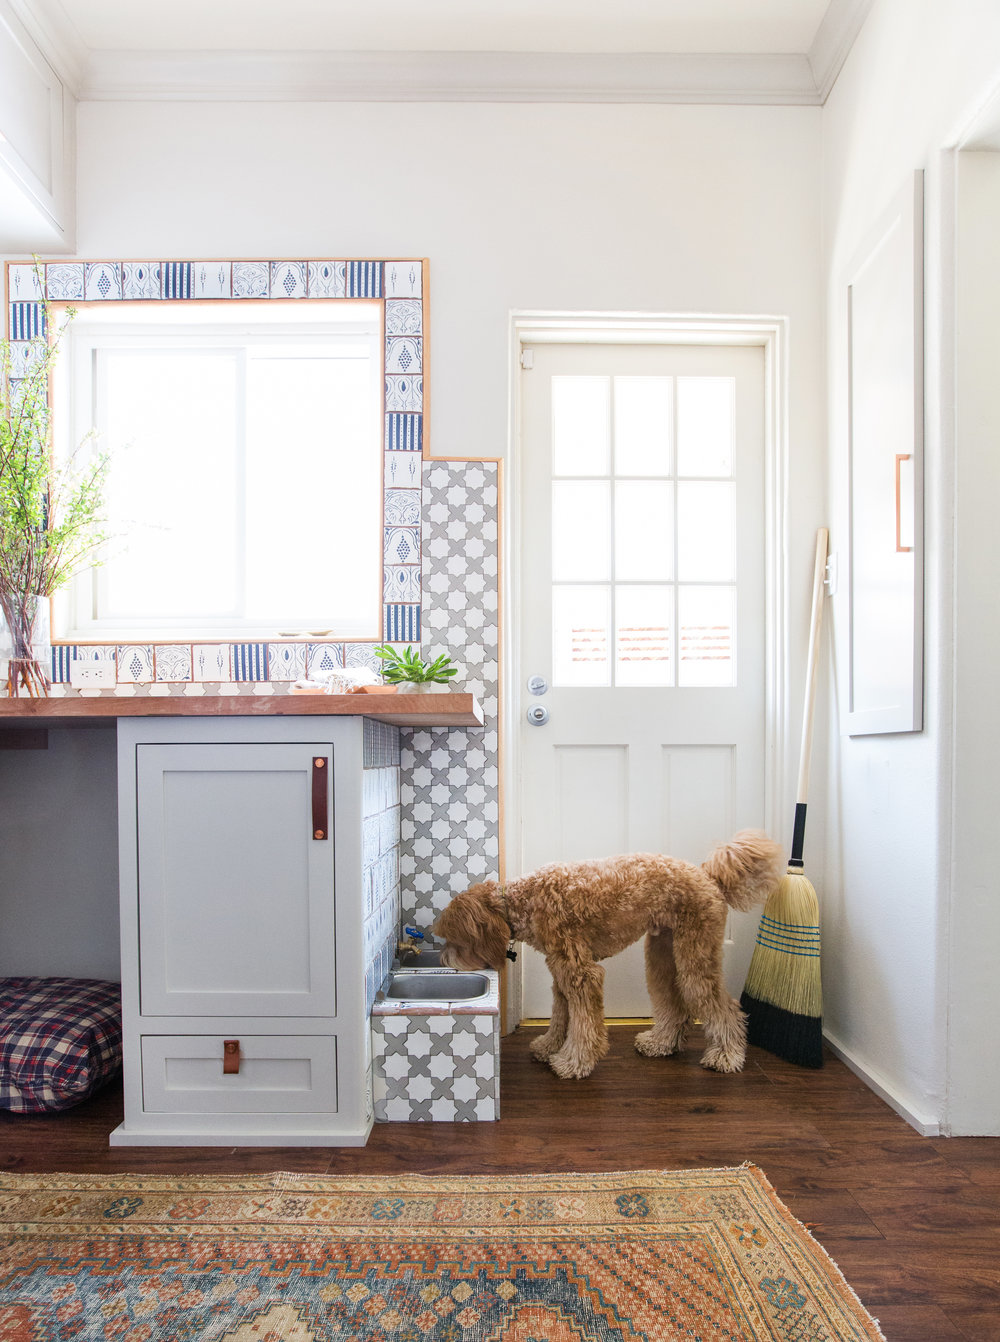 A Utilitarian Space Never Looked So Good: A Fresh Laundry Room Makeover - Copy byCYNTHIA BAXTERDesigner Stefani Stein Gives Tips on Maximizing Storage & Adding Style to a Typically Mundane RoomIt has been estimated that the average mother spends five months of her life doing laundry. Unfortunately, typical laundry rooms are usually pretty uninspiring spaces in which to spend so much time. And chores are already something that we don't look forward to, so why not at least make these spaces more stylish and enjoyable to be in?Designer Stefani Stein did just for her clients in this beautiful laundry room makeover – a shining example of blending form and function. We asked her to share some ideas on how to create beautiful working spaces.full story